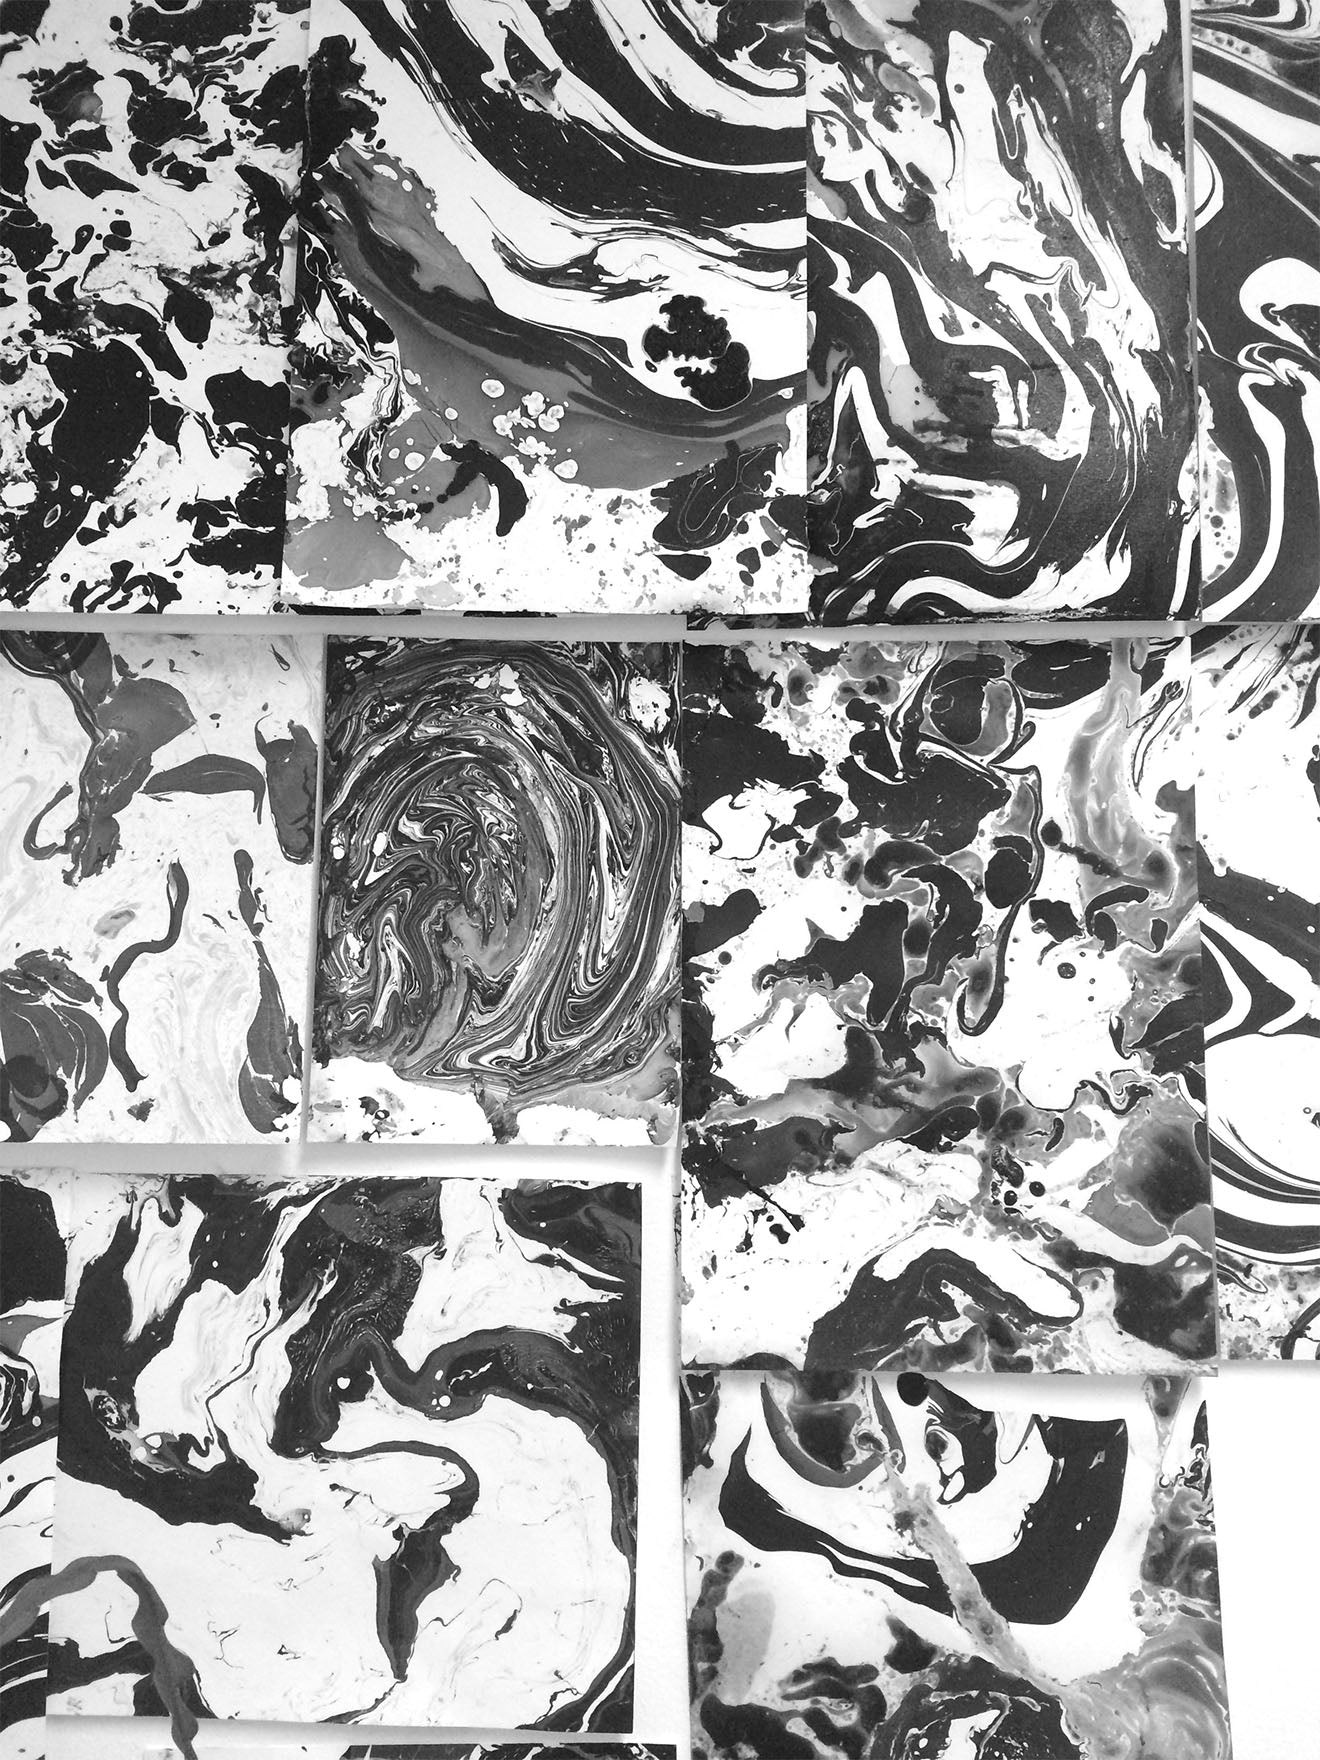 black and white marbling panels from Patternity